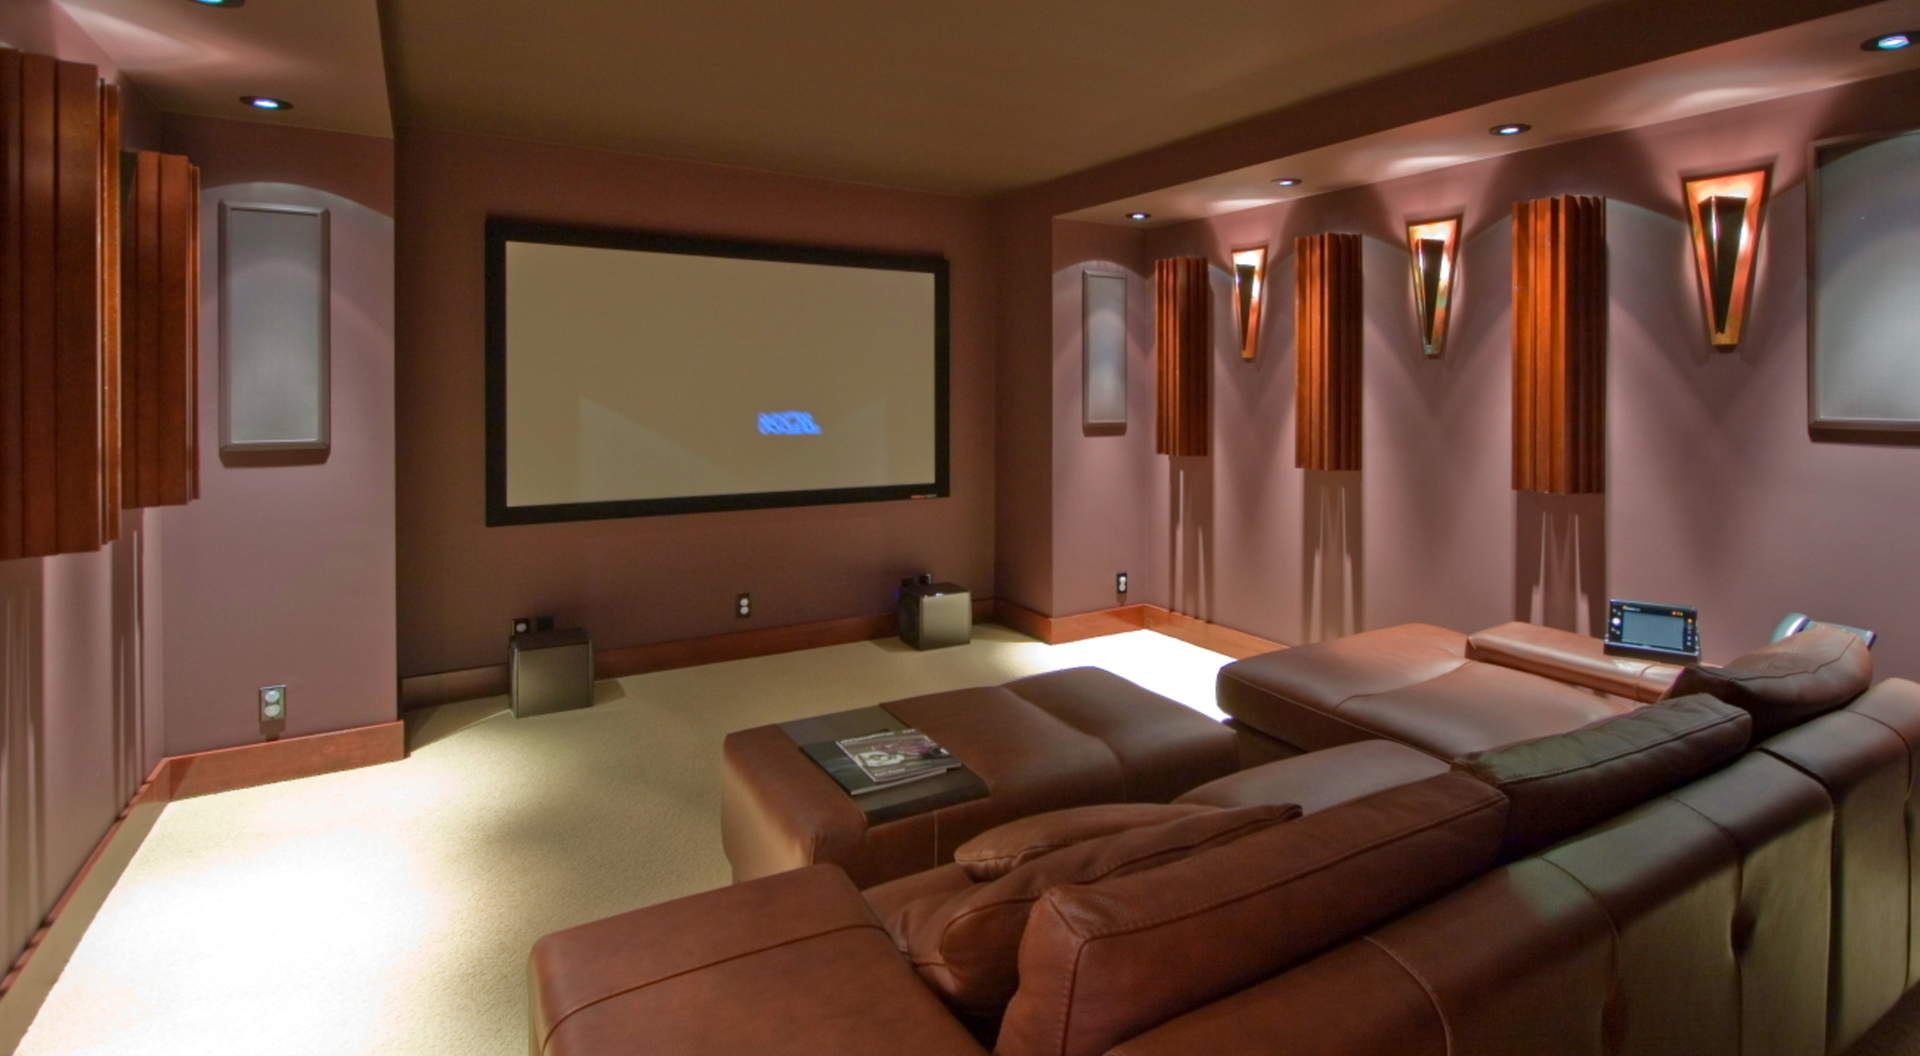 Fabulous Theatre Room